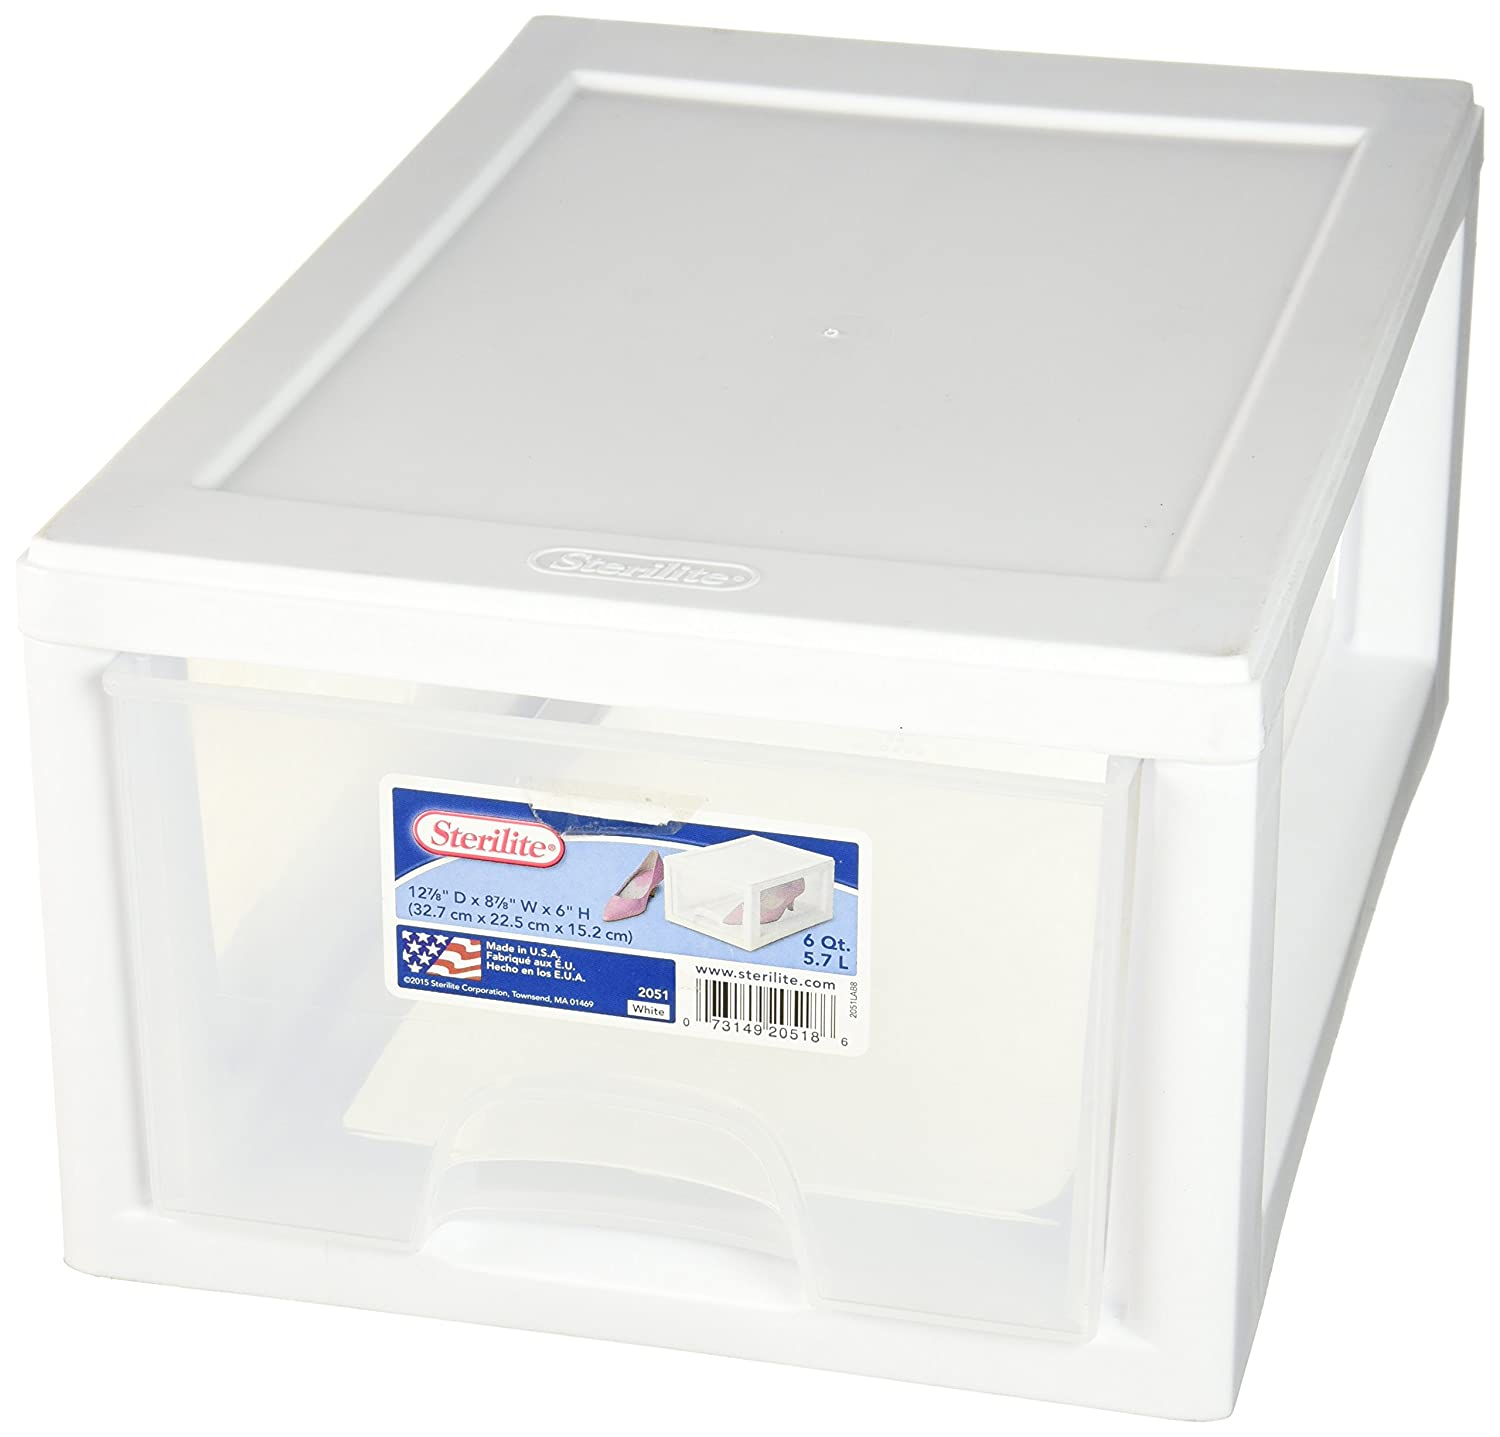 Sterlite Storage Boxes Buy Online Long Box Drawer With